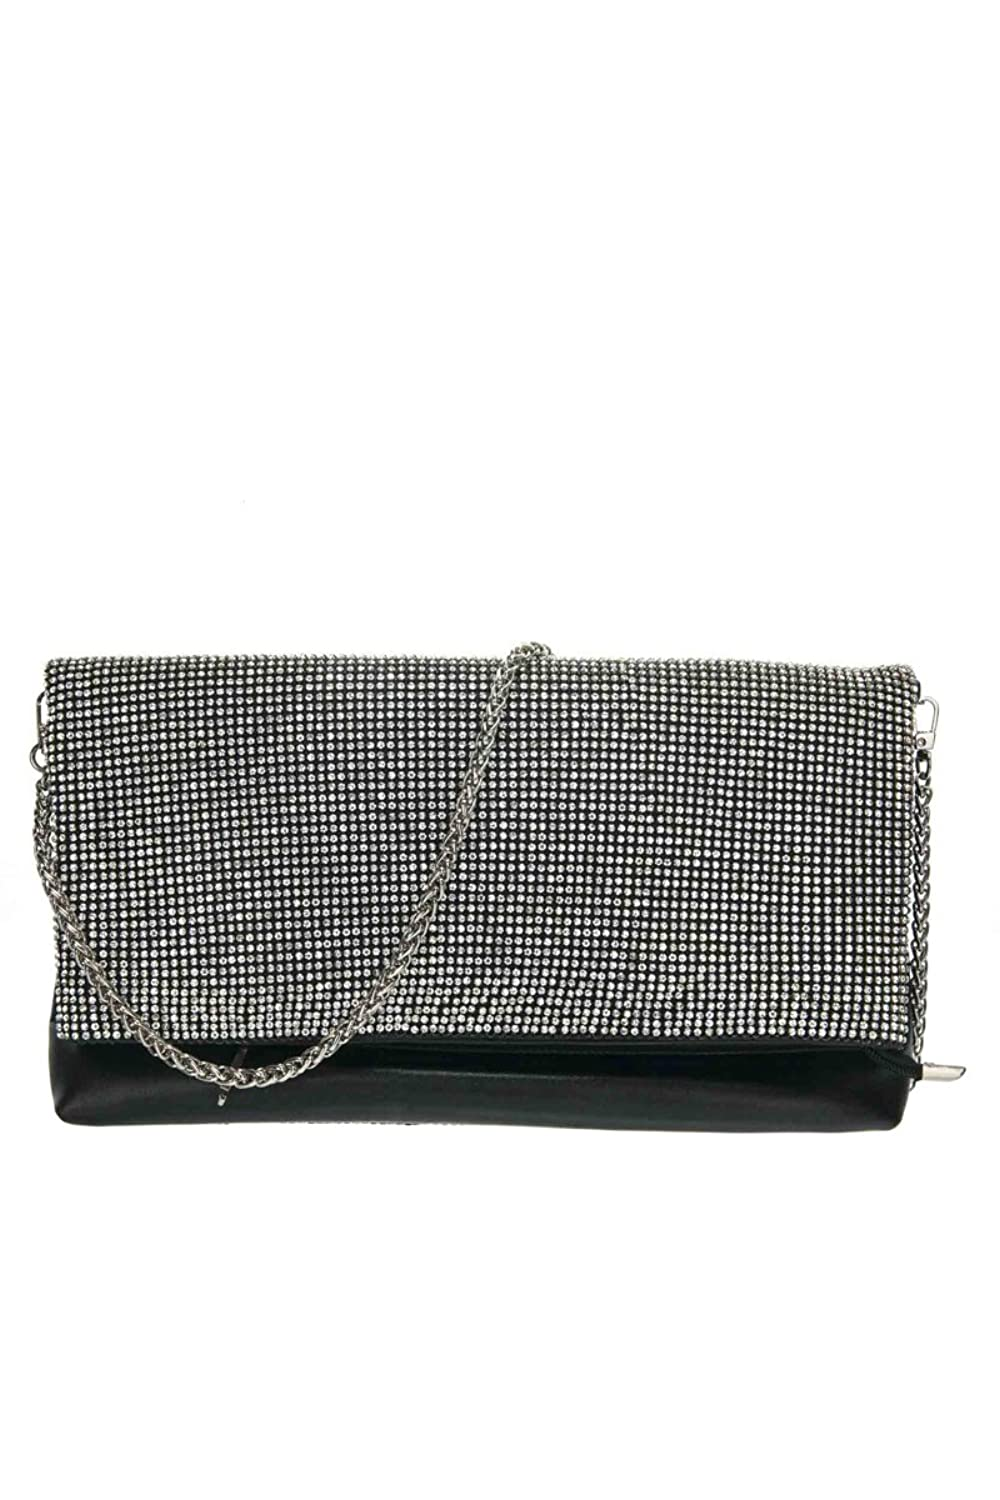 lcolette Boutique Style Front All Over Rhinestone And Metal Accented Clutch hd2134